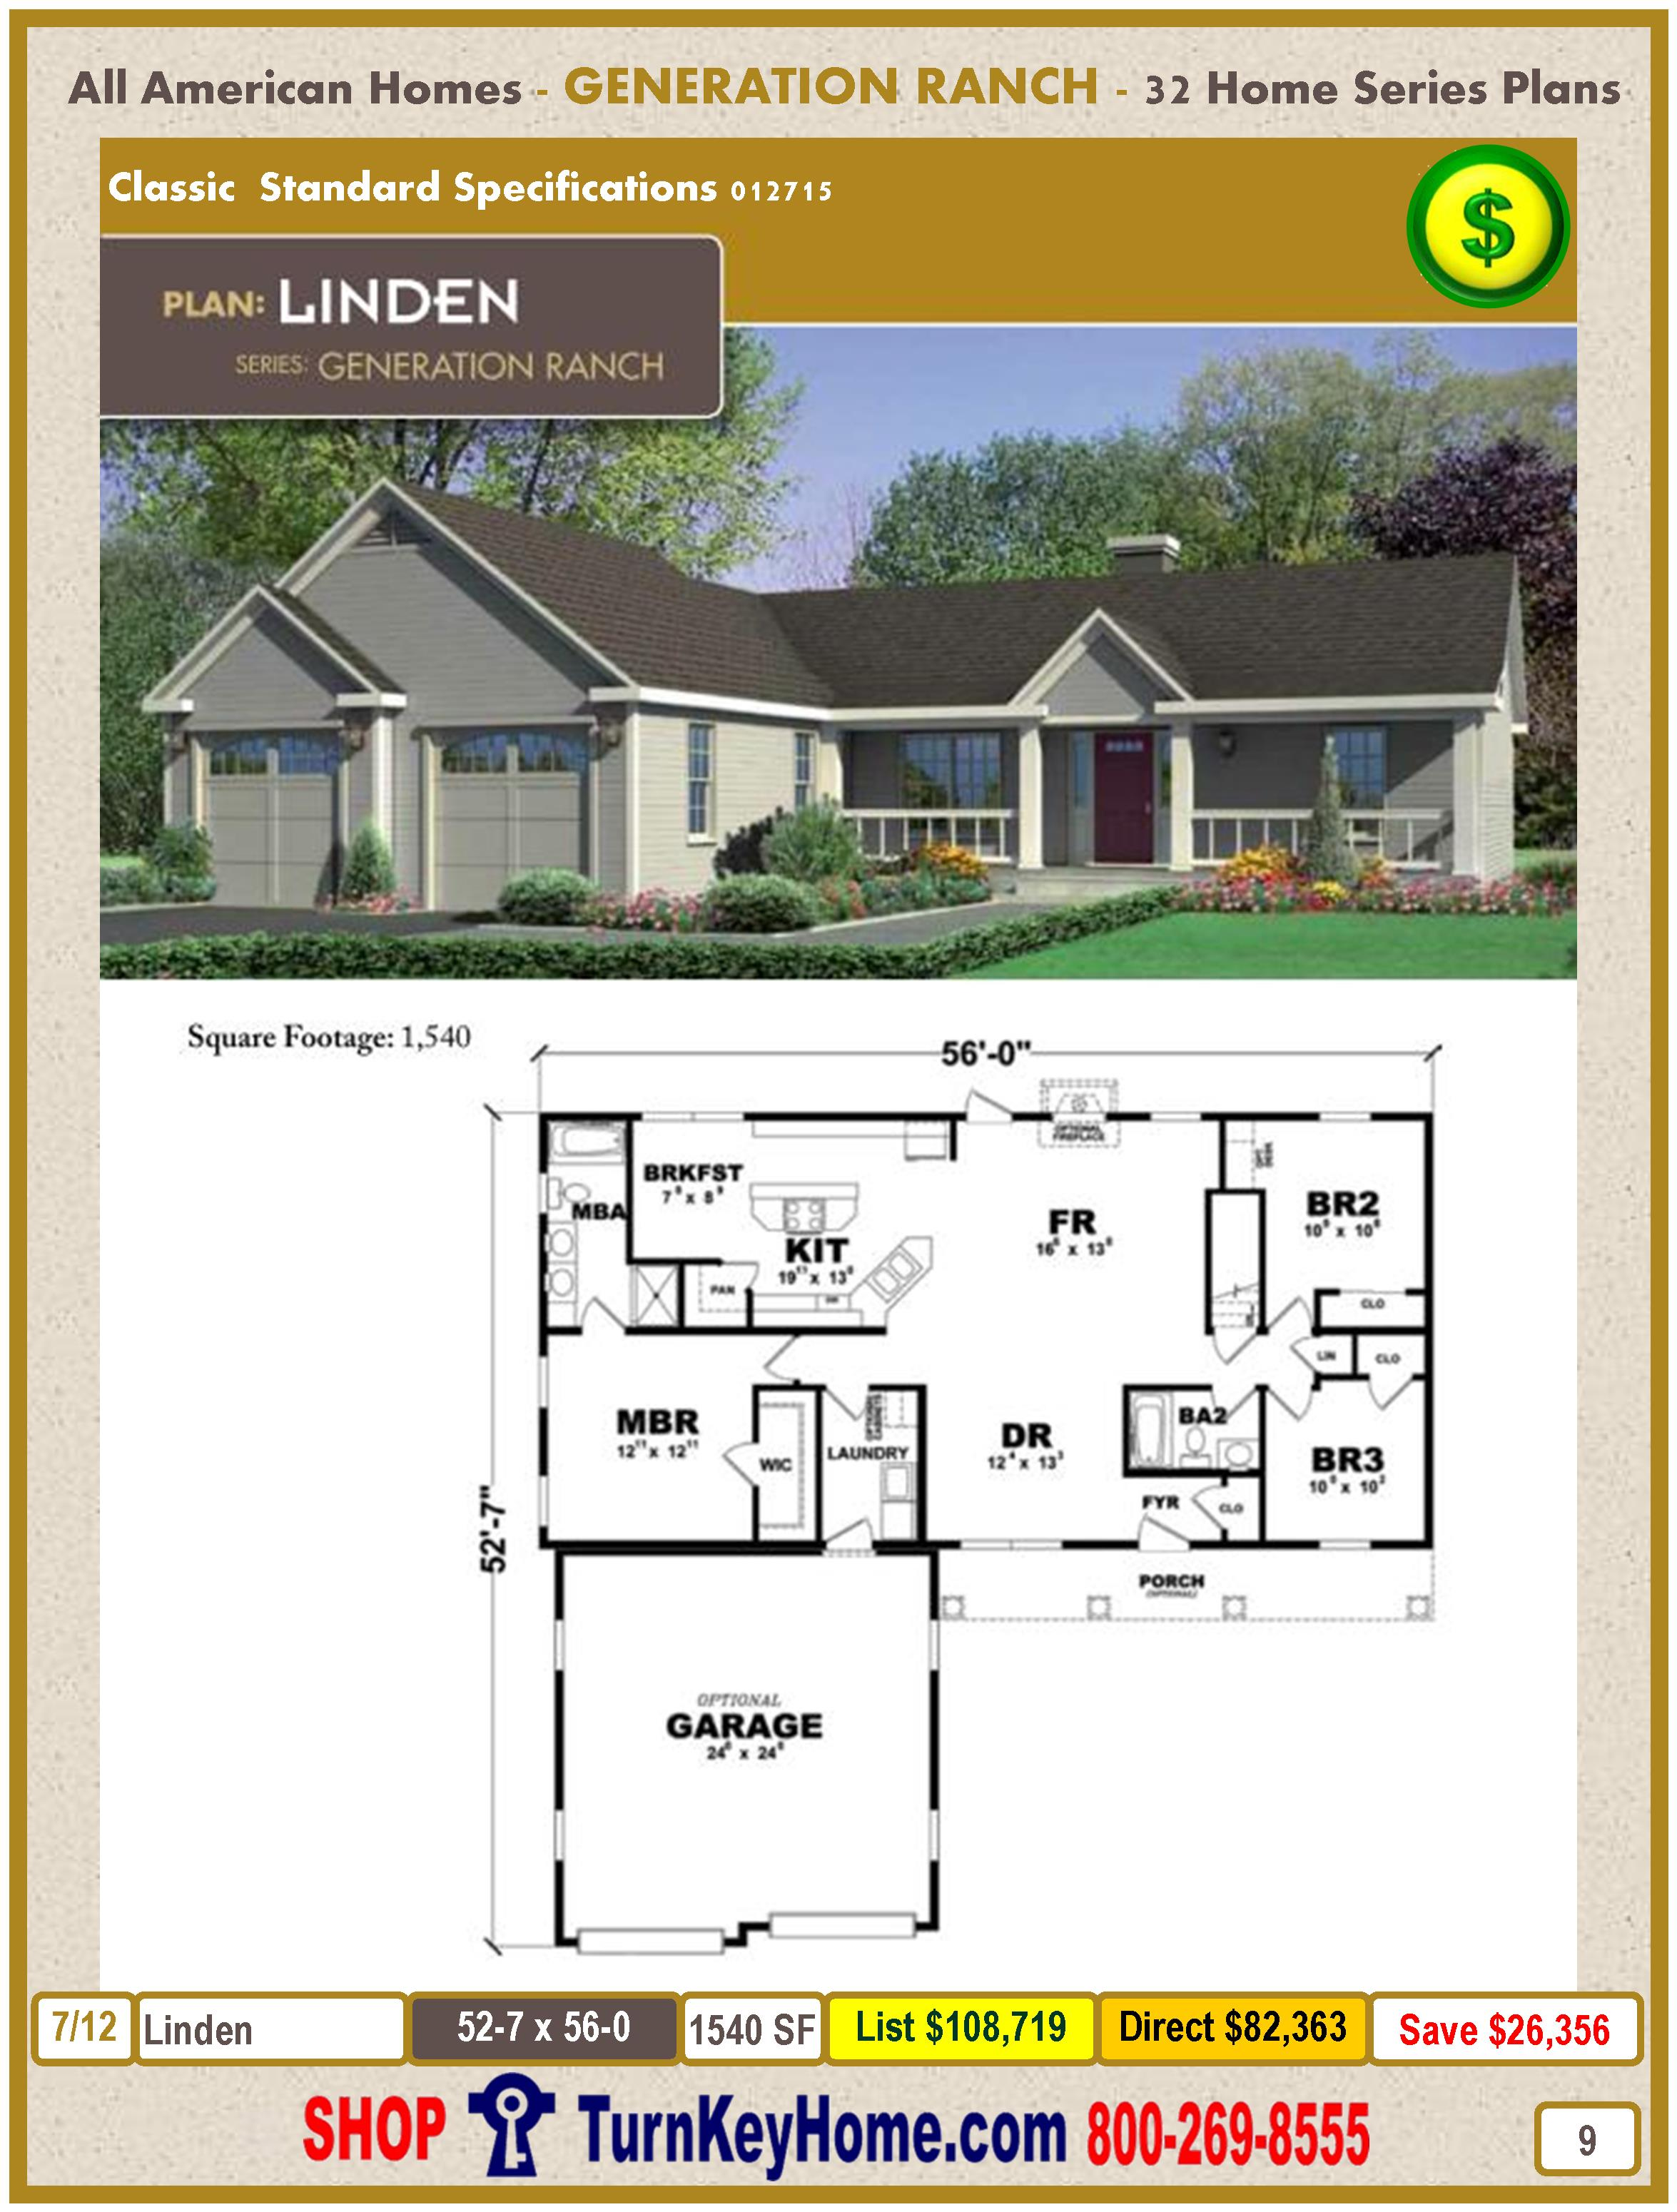 Modular.All.American.Homes.Generation.Ranch.Home.Series.Catalog.Page.9.Linden.Direct.Price.021415